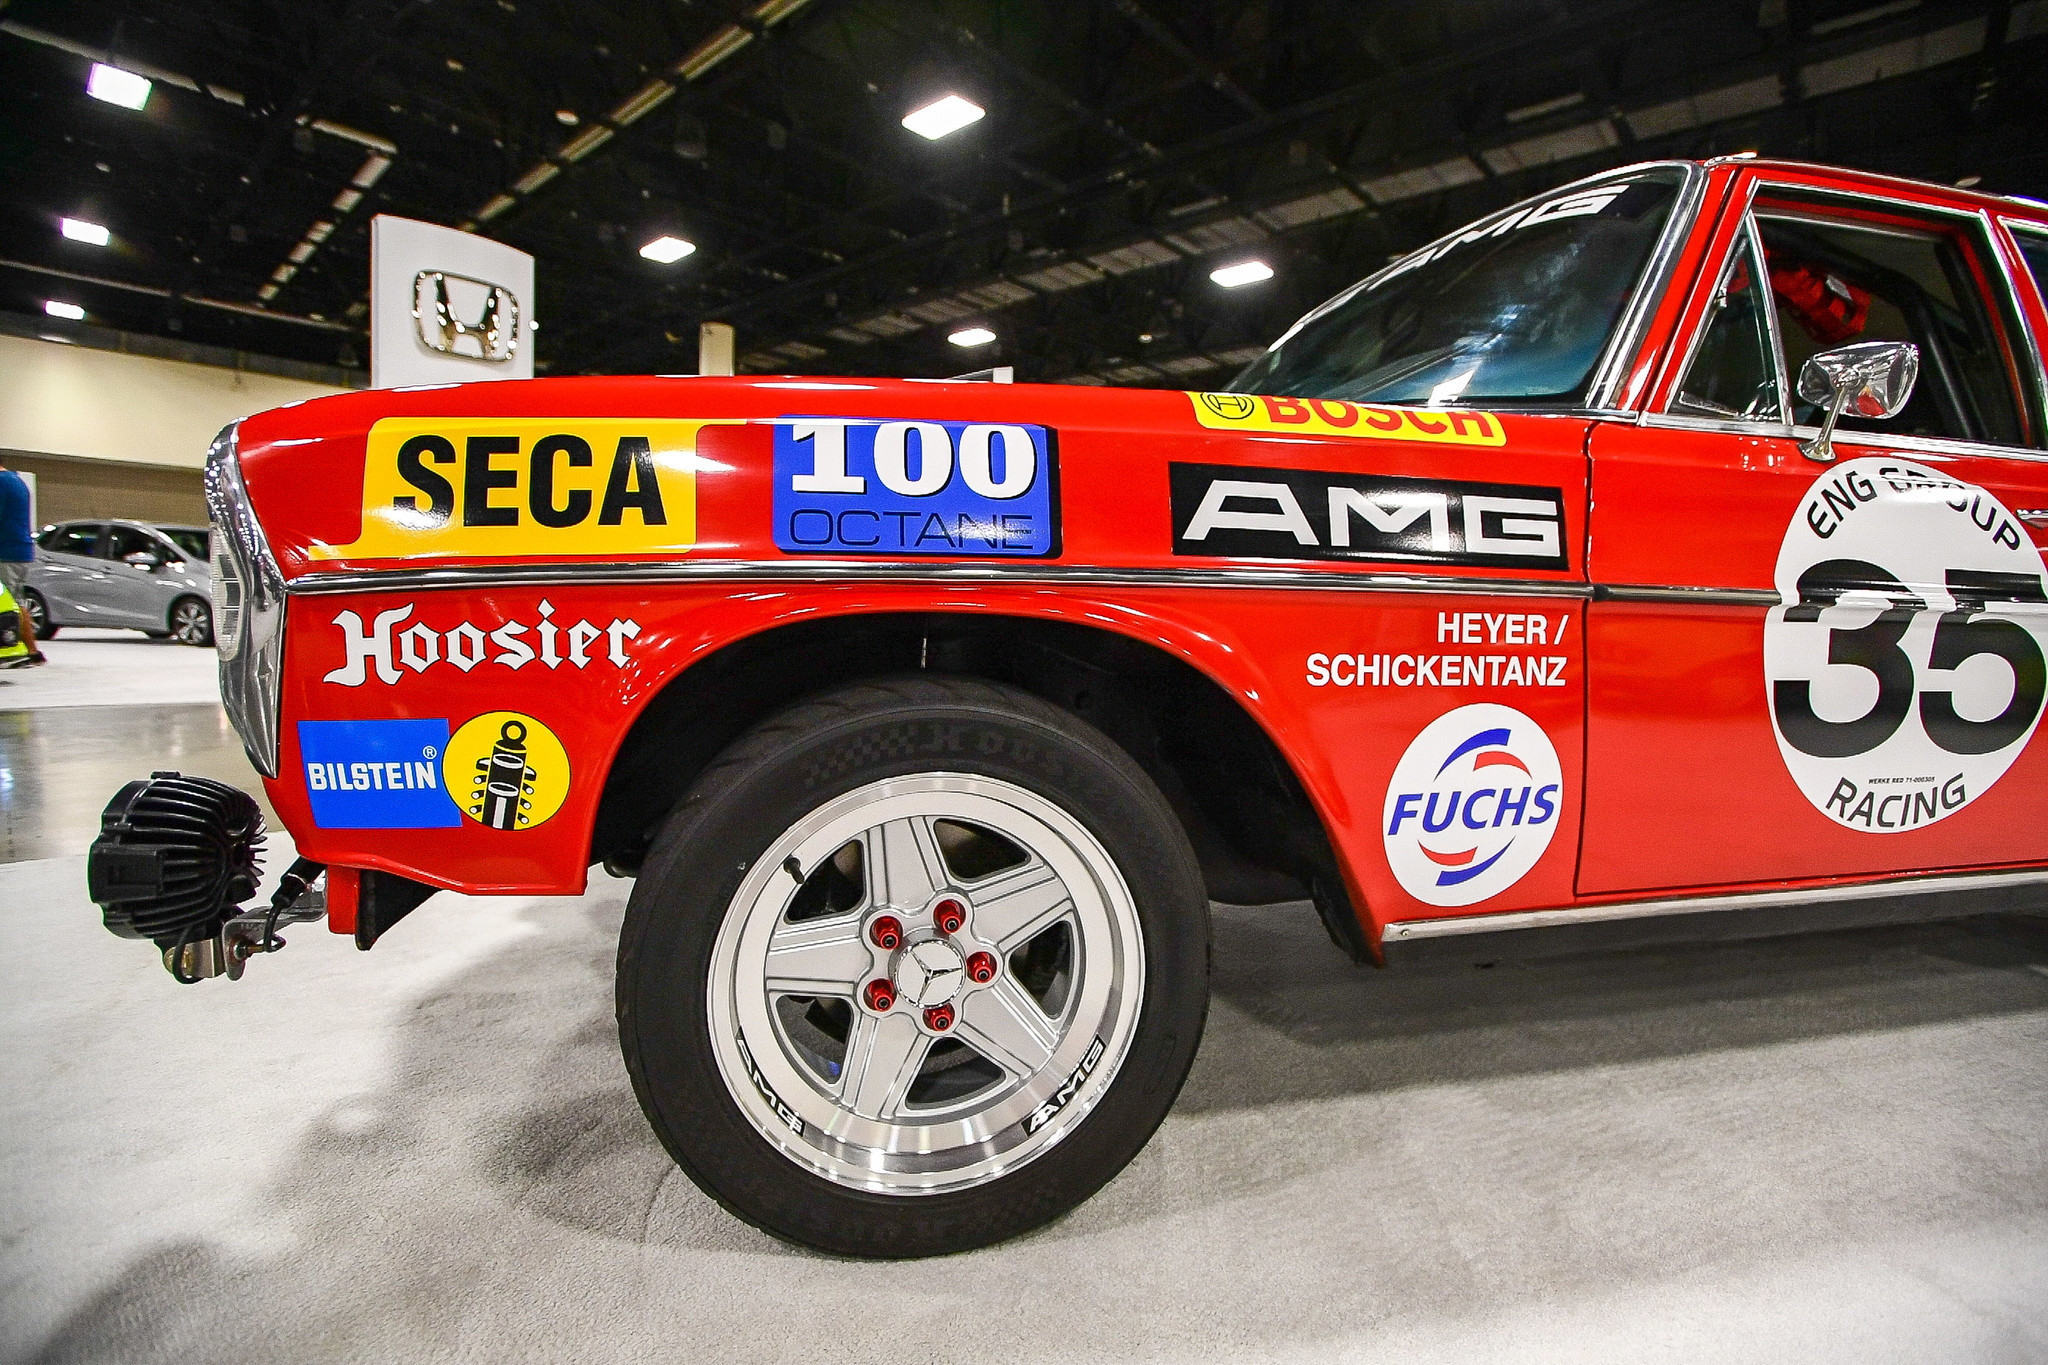 Fort Lauderdale International Auto Show is back